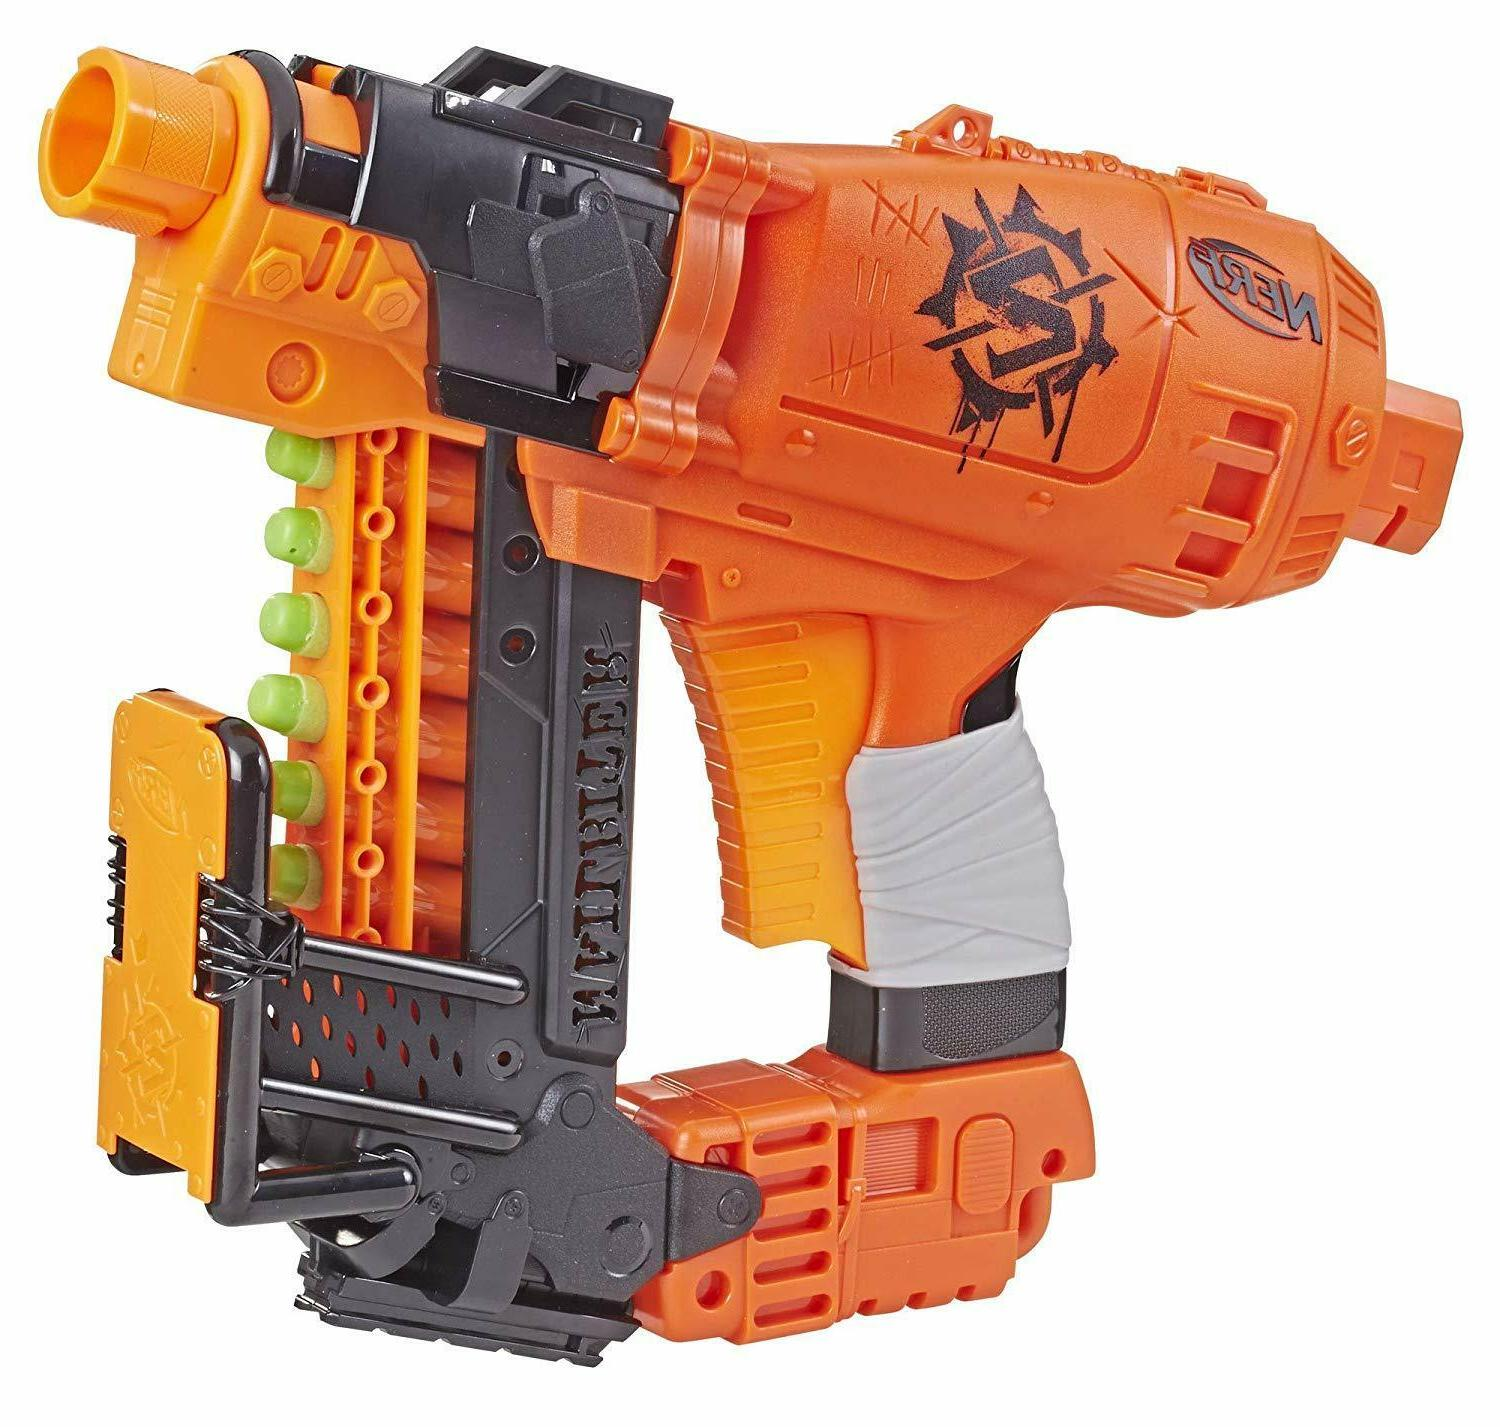 nailbiter zombie strike toy blaster gun weapon